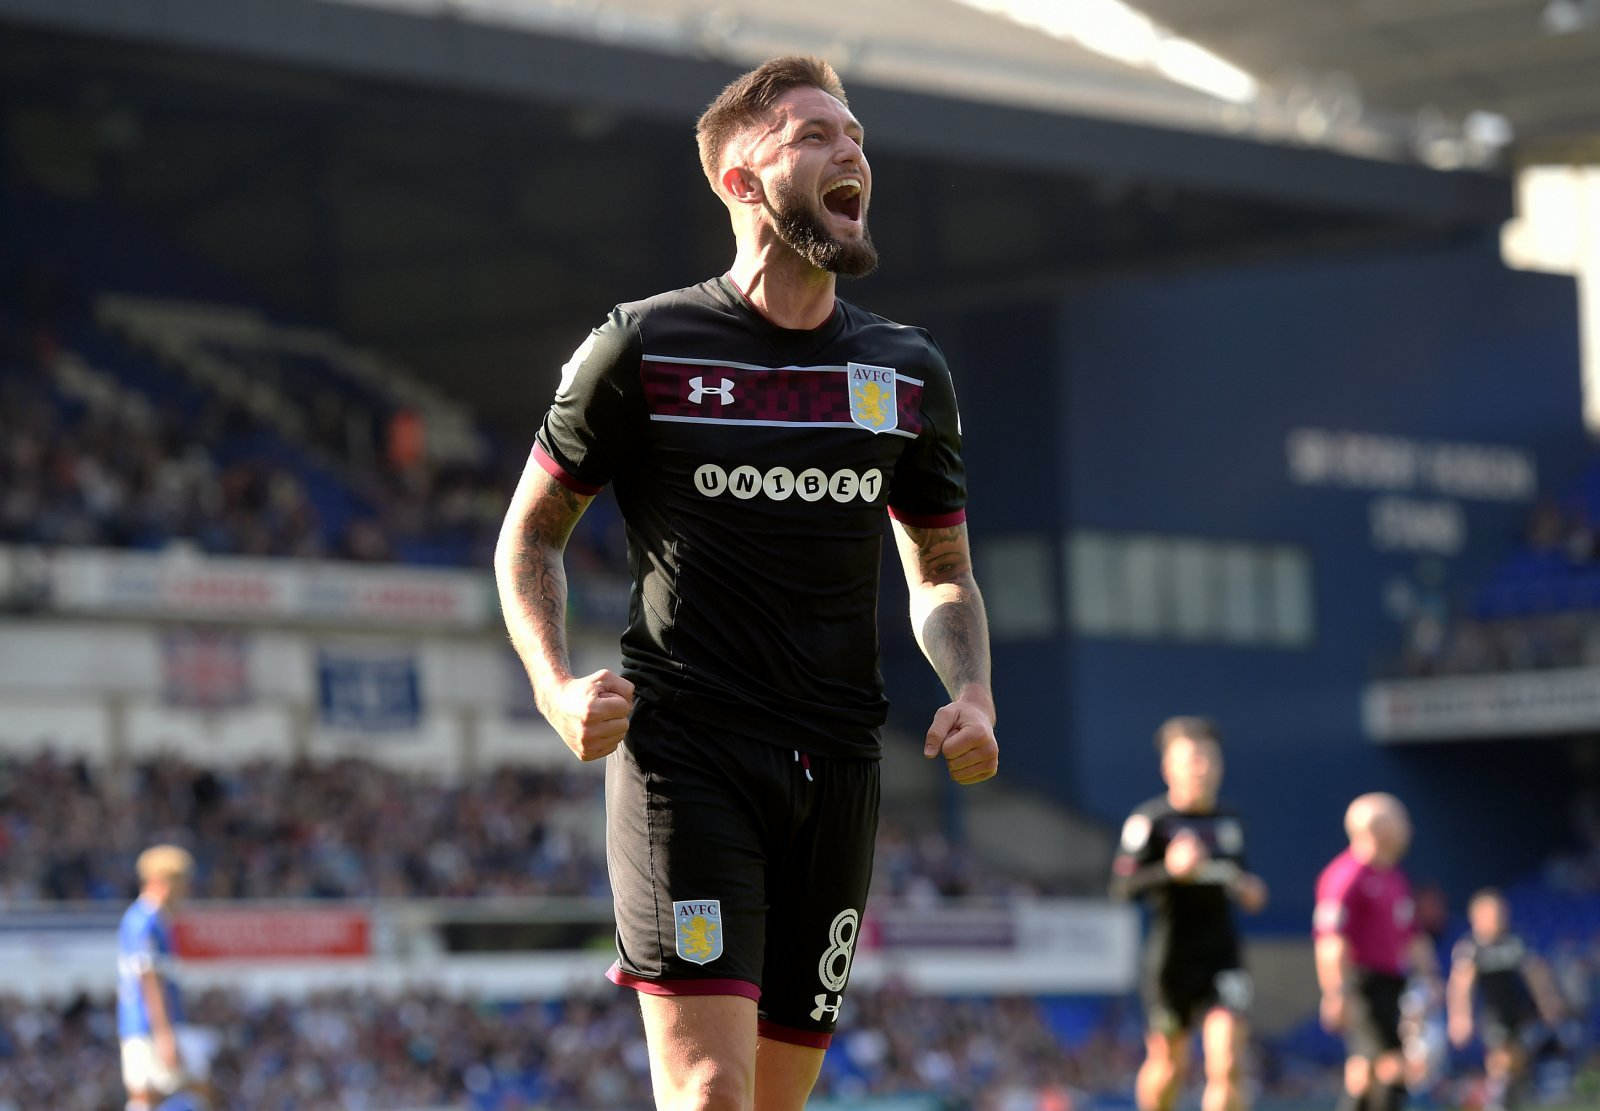 Introducing: The man to complete Villa's play-off push, Henri Lansbury